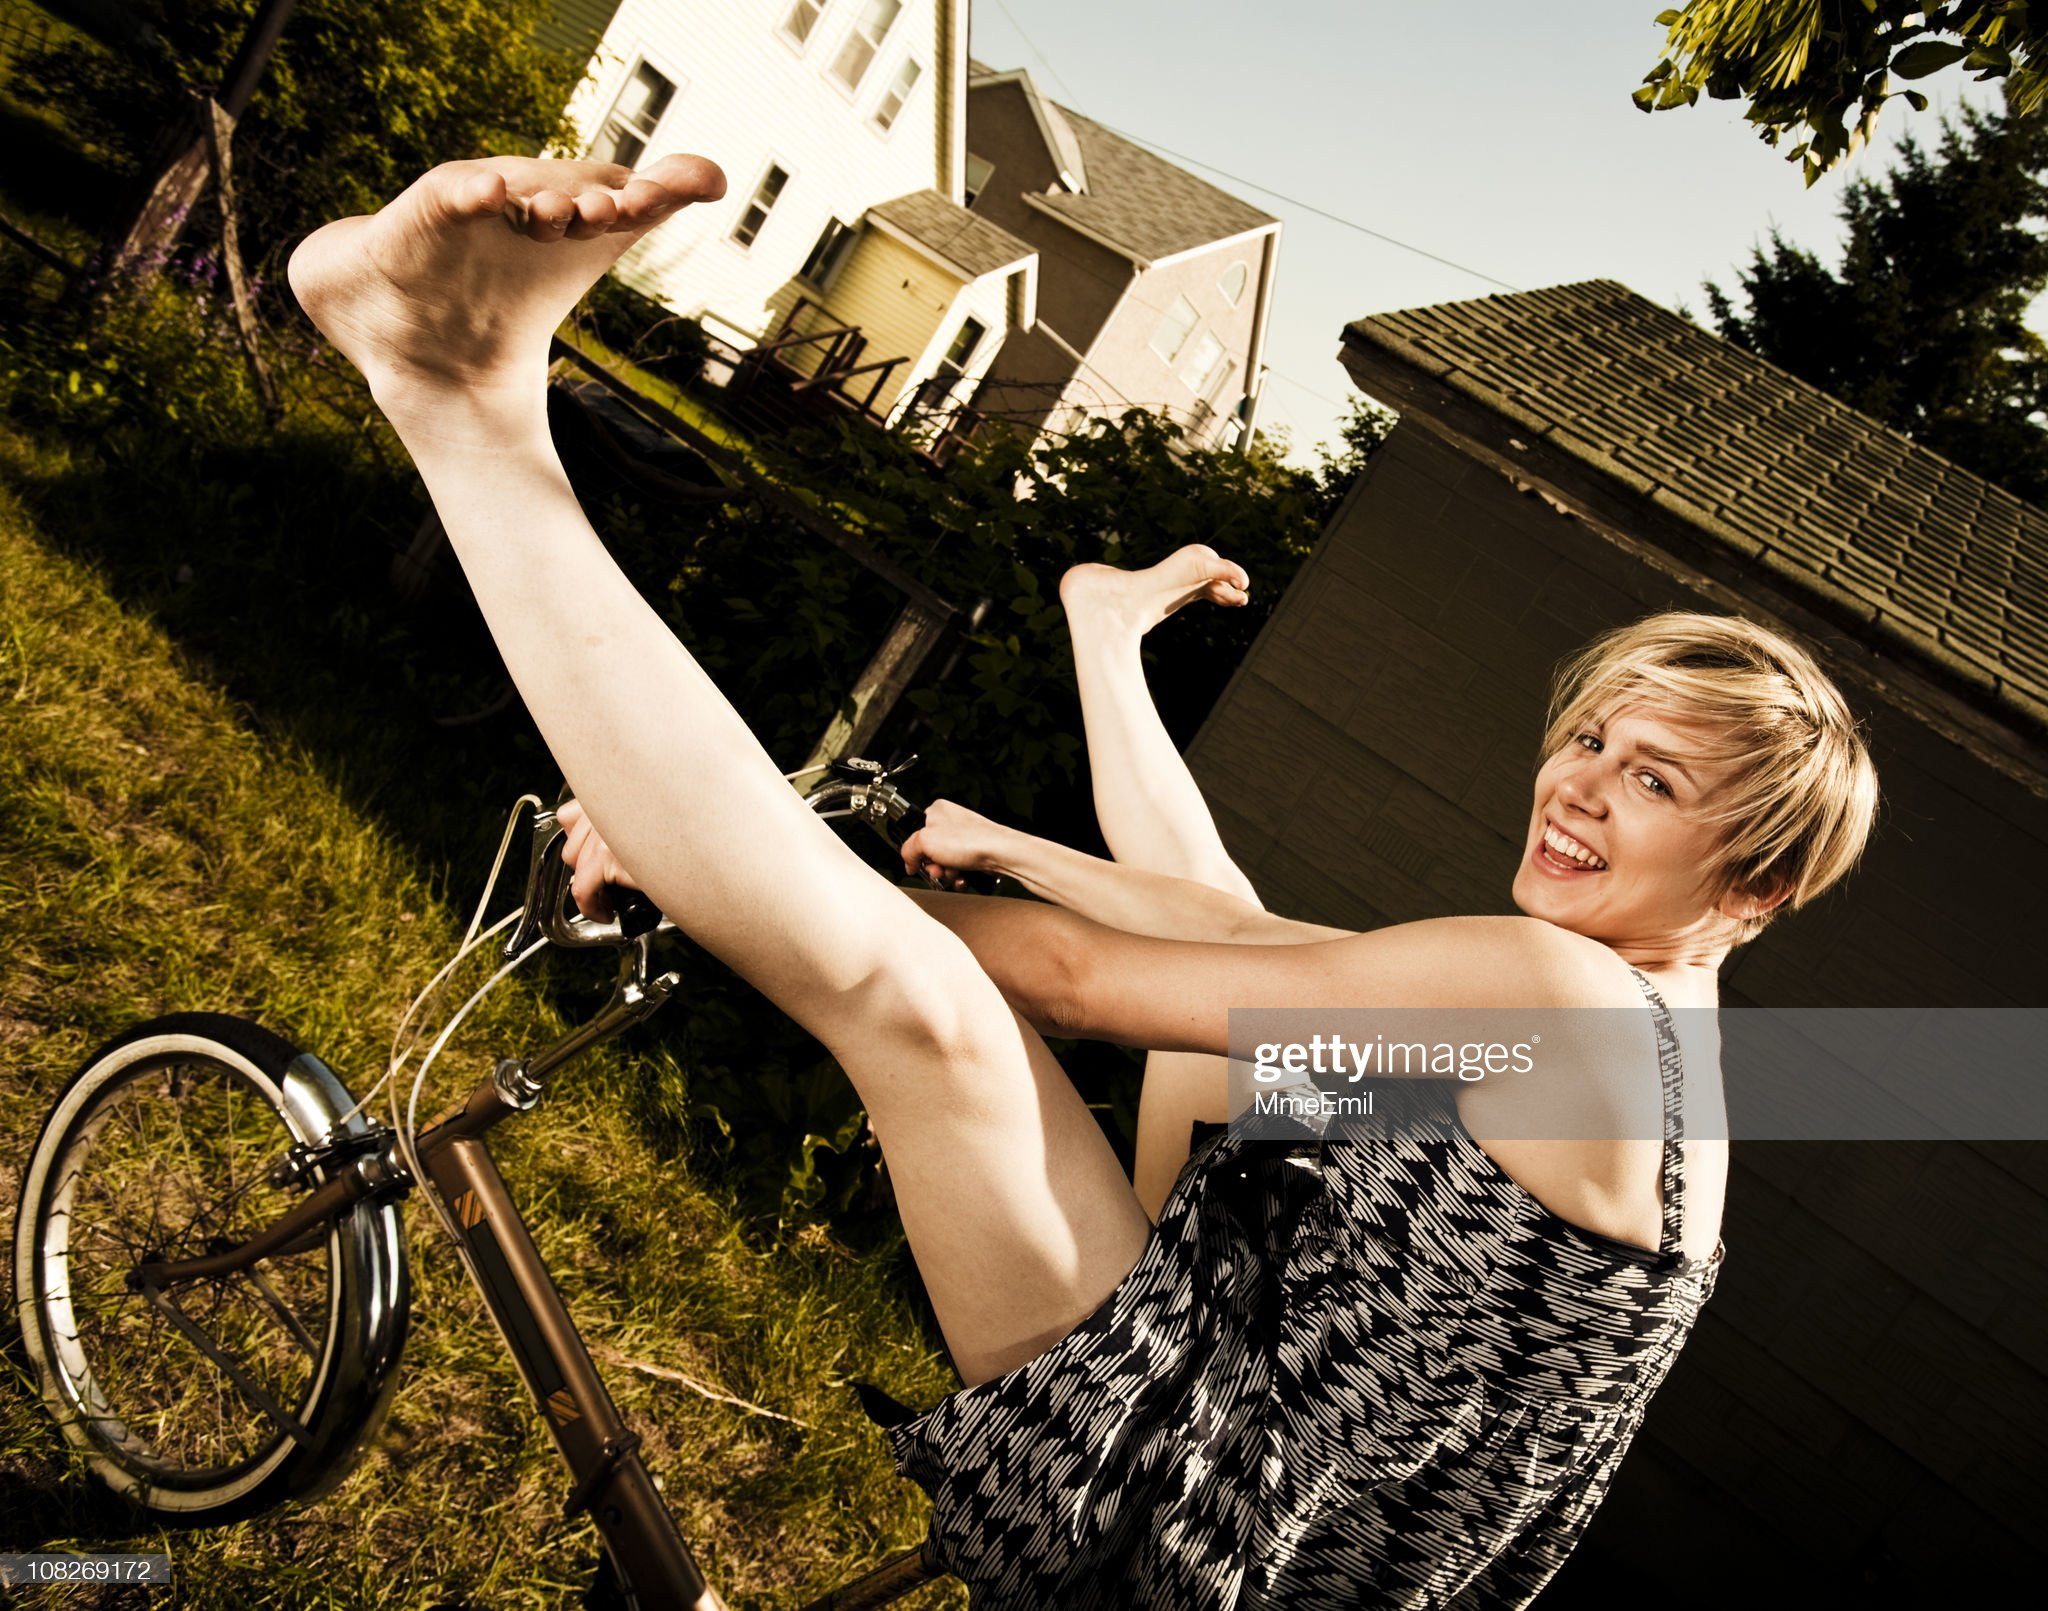 https://media.gettyimages.com/photos/freedom-and-bicycle-picture-id108269172?s=2048x2048